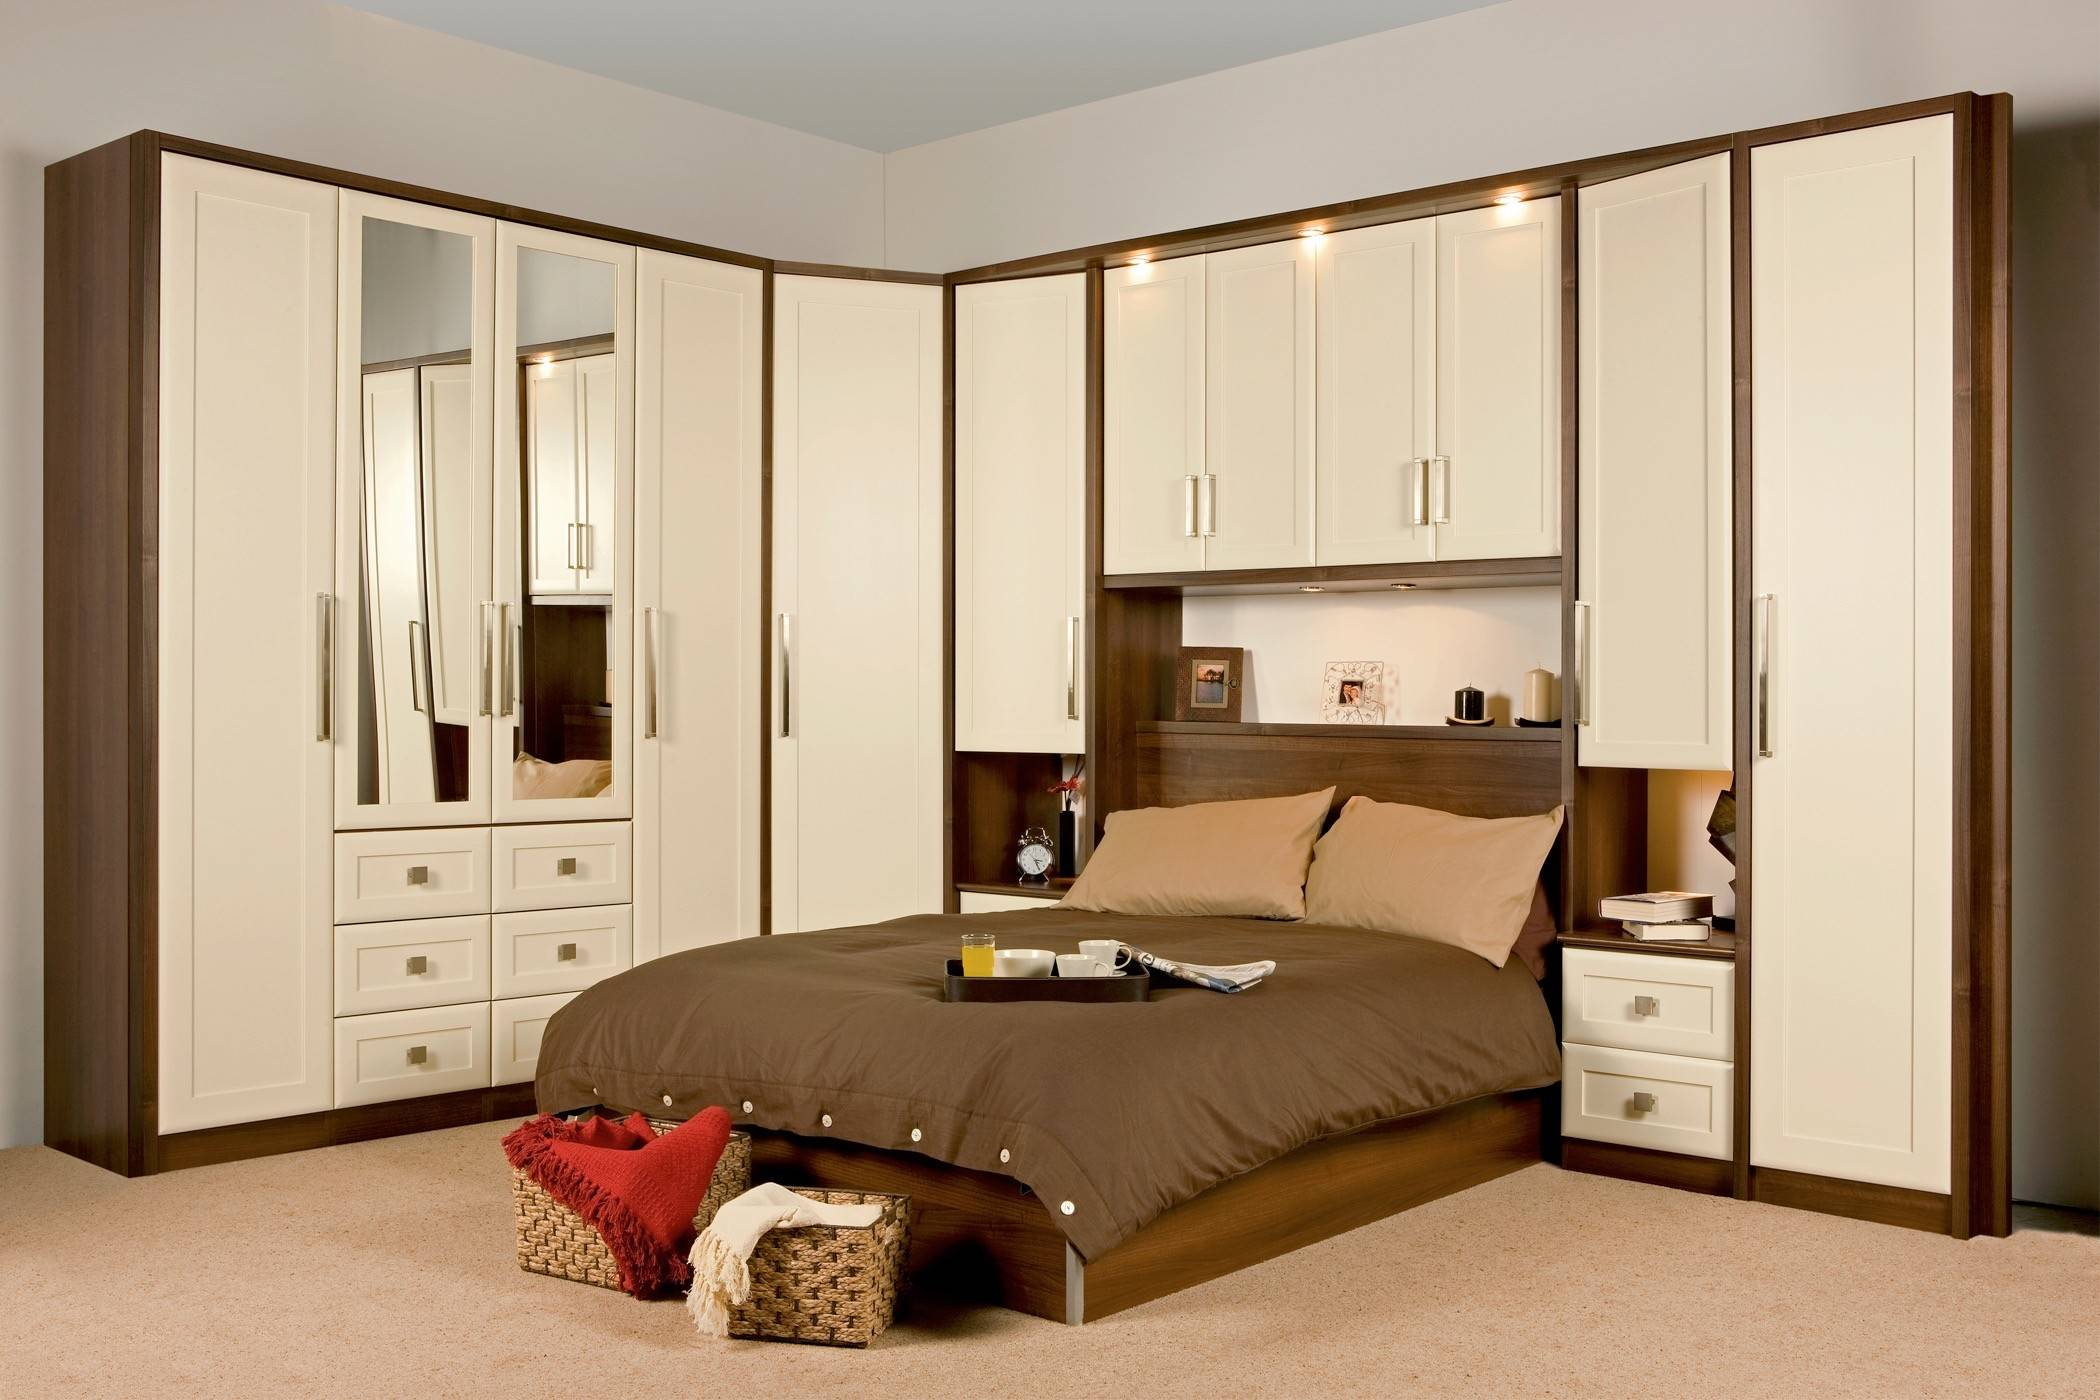 Bedroom Surprising Almirah Designs - The Inductive